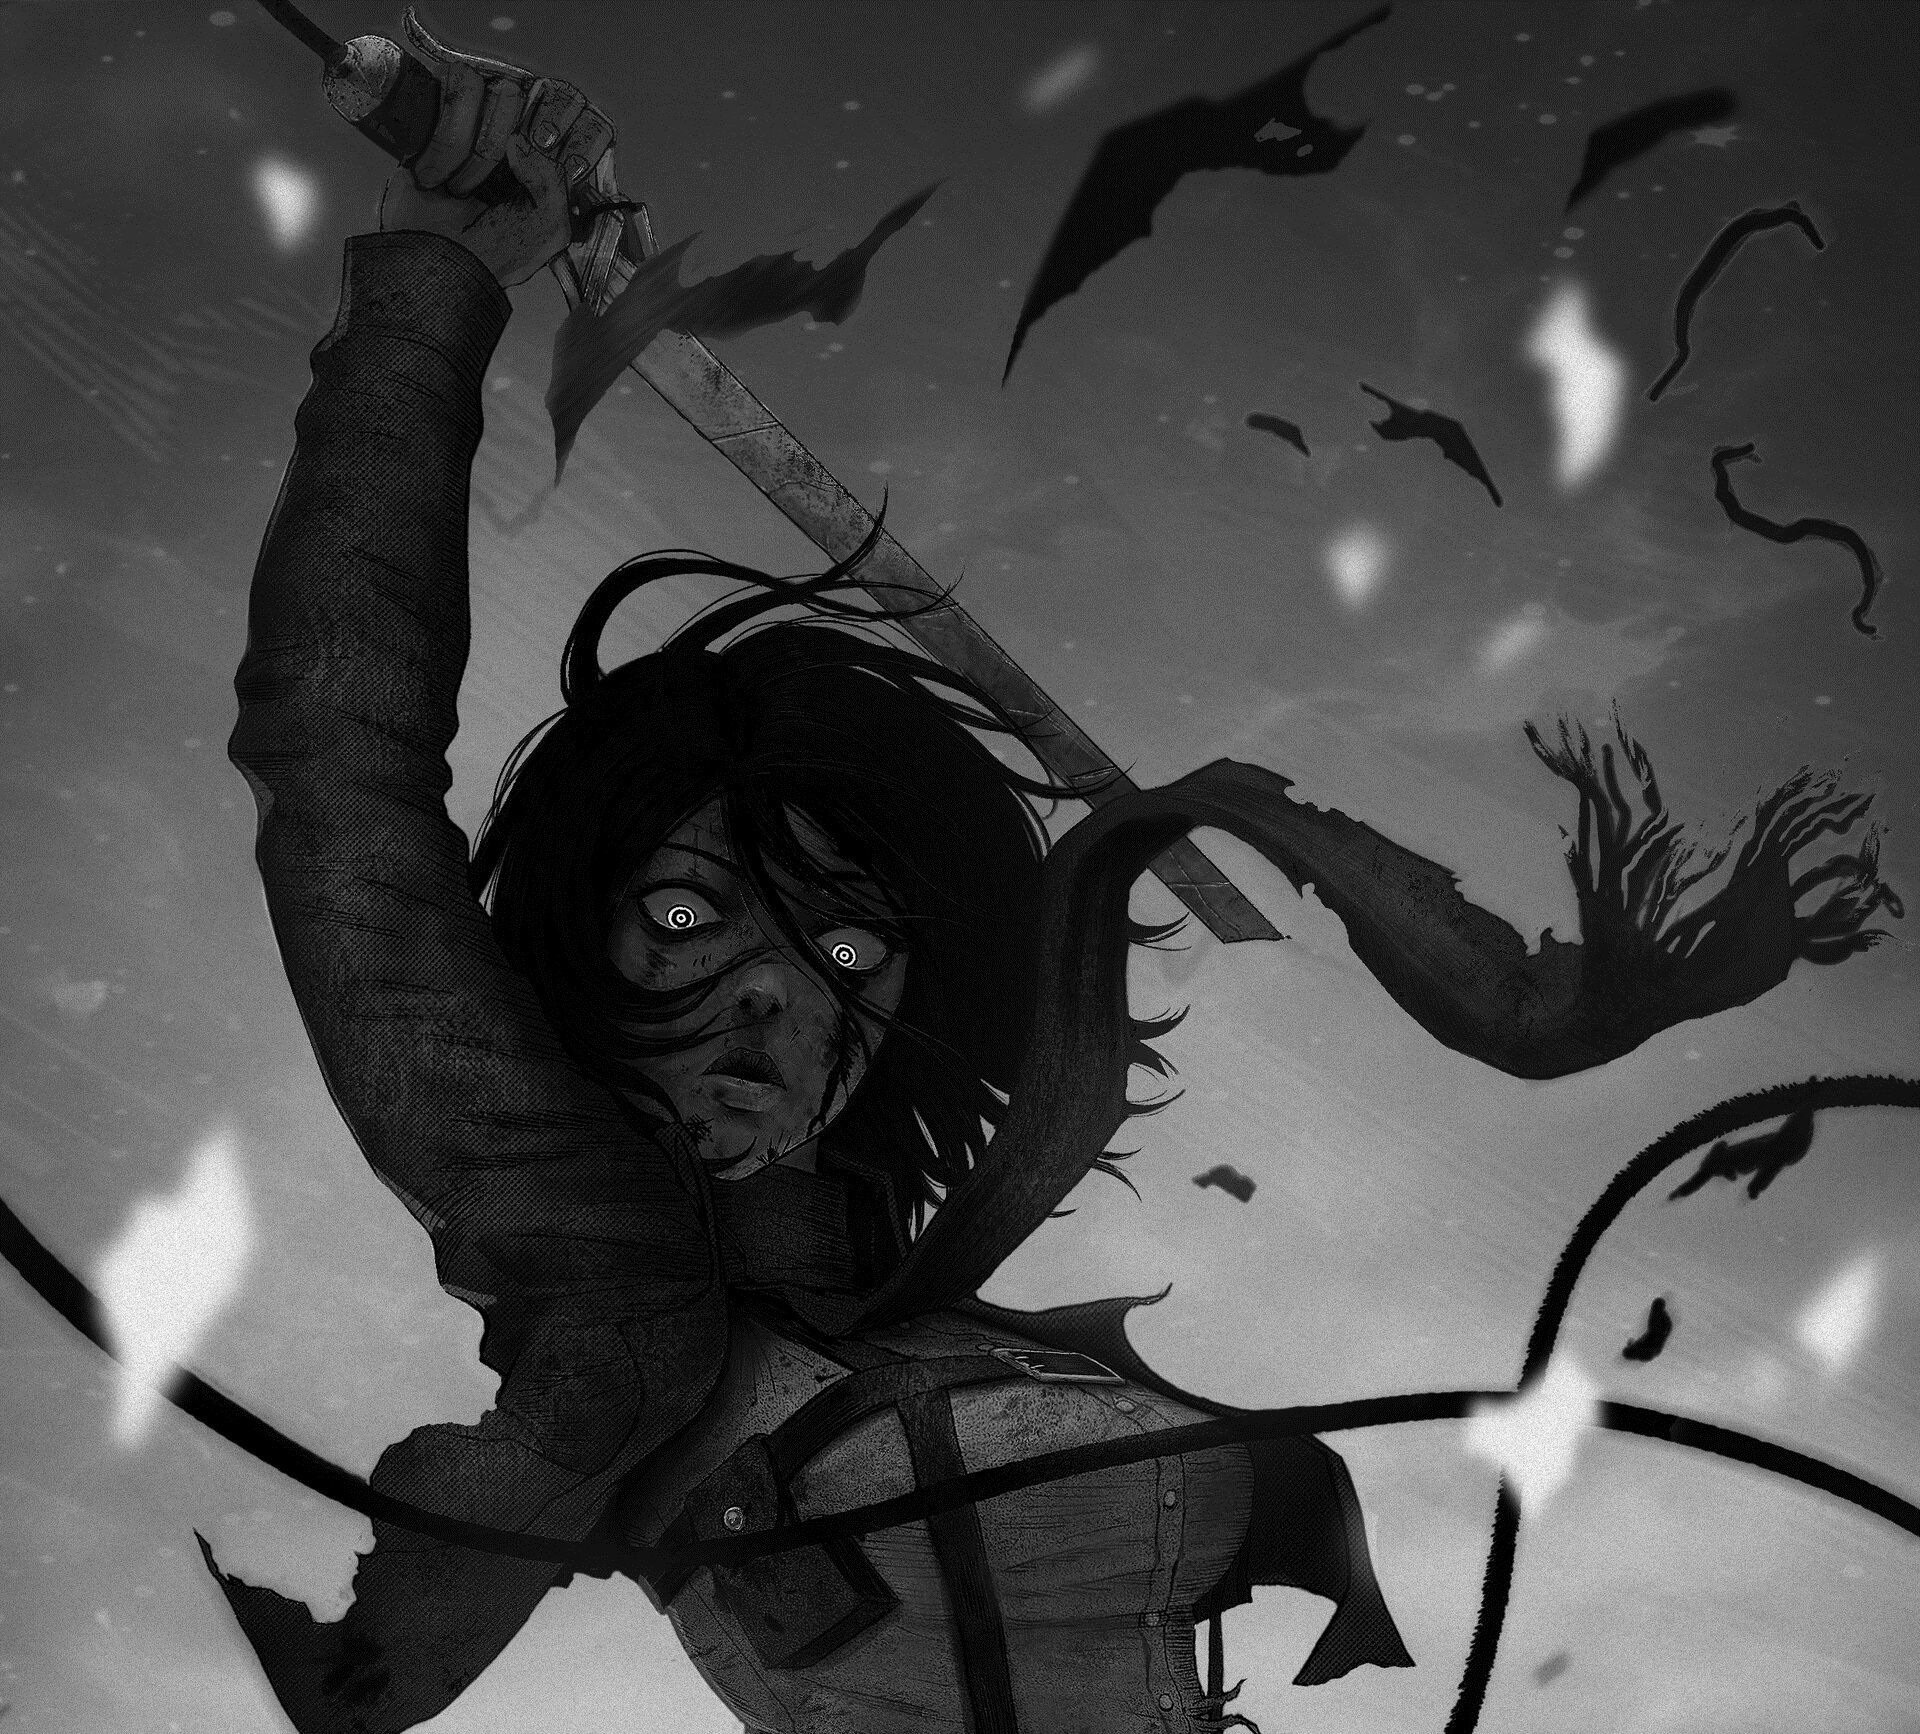 Anime Attack On Titan Mikasa Ackerman Hd Wallpaper Dark Attack On Titan Fanart Attack On Titan Anime Attack On Titan Eren